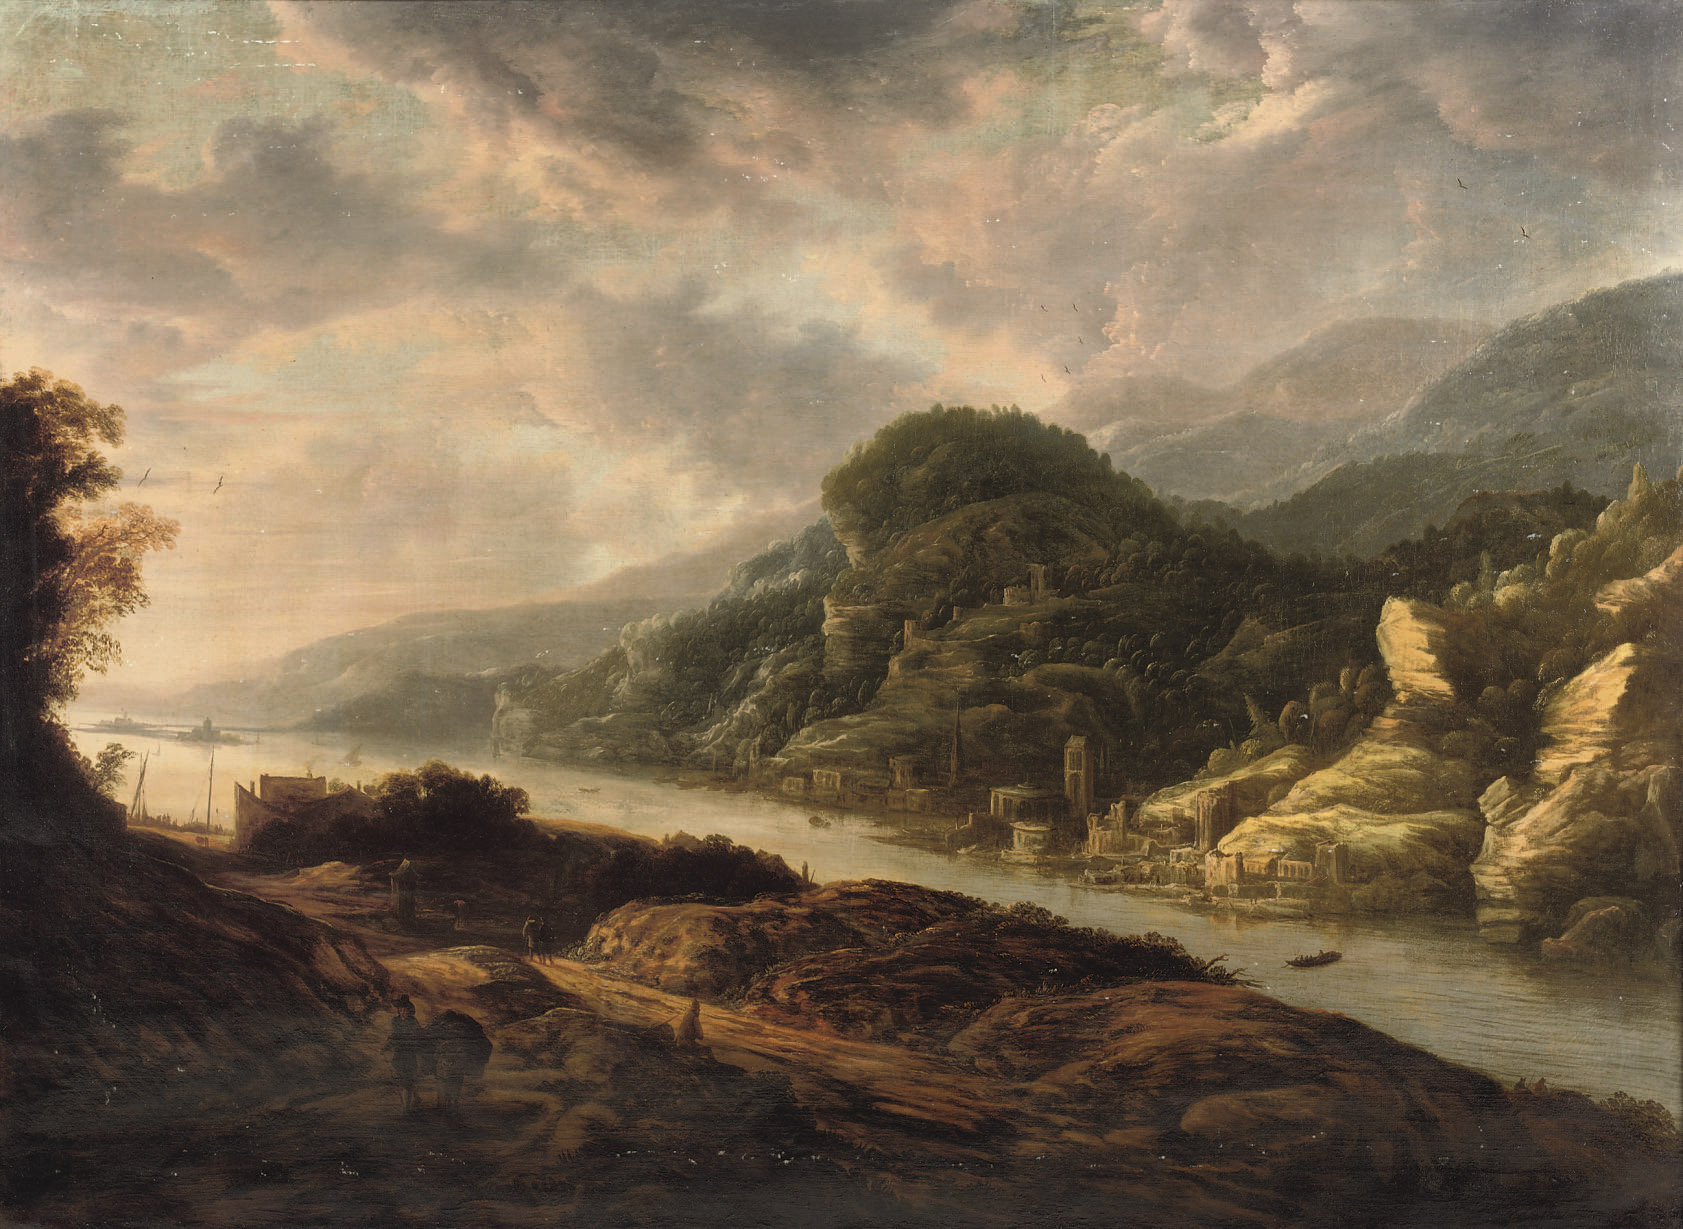 A river landscape with travellers on a path and a town along the river